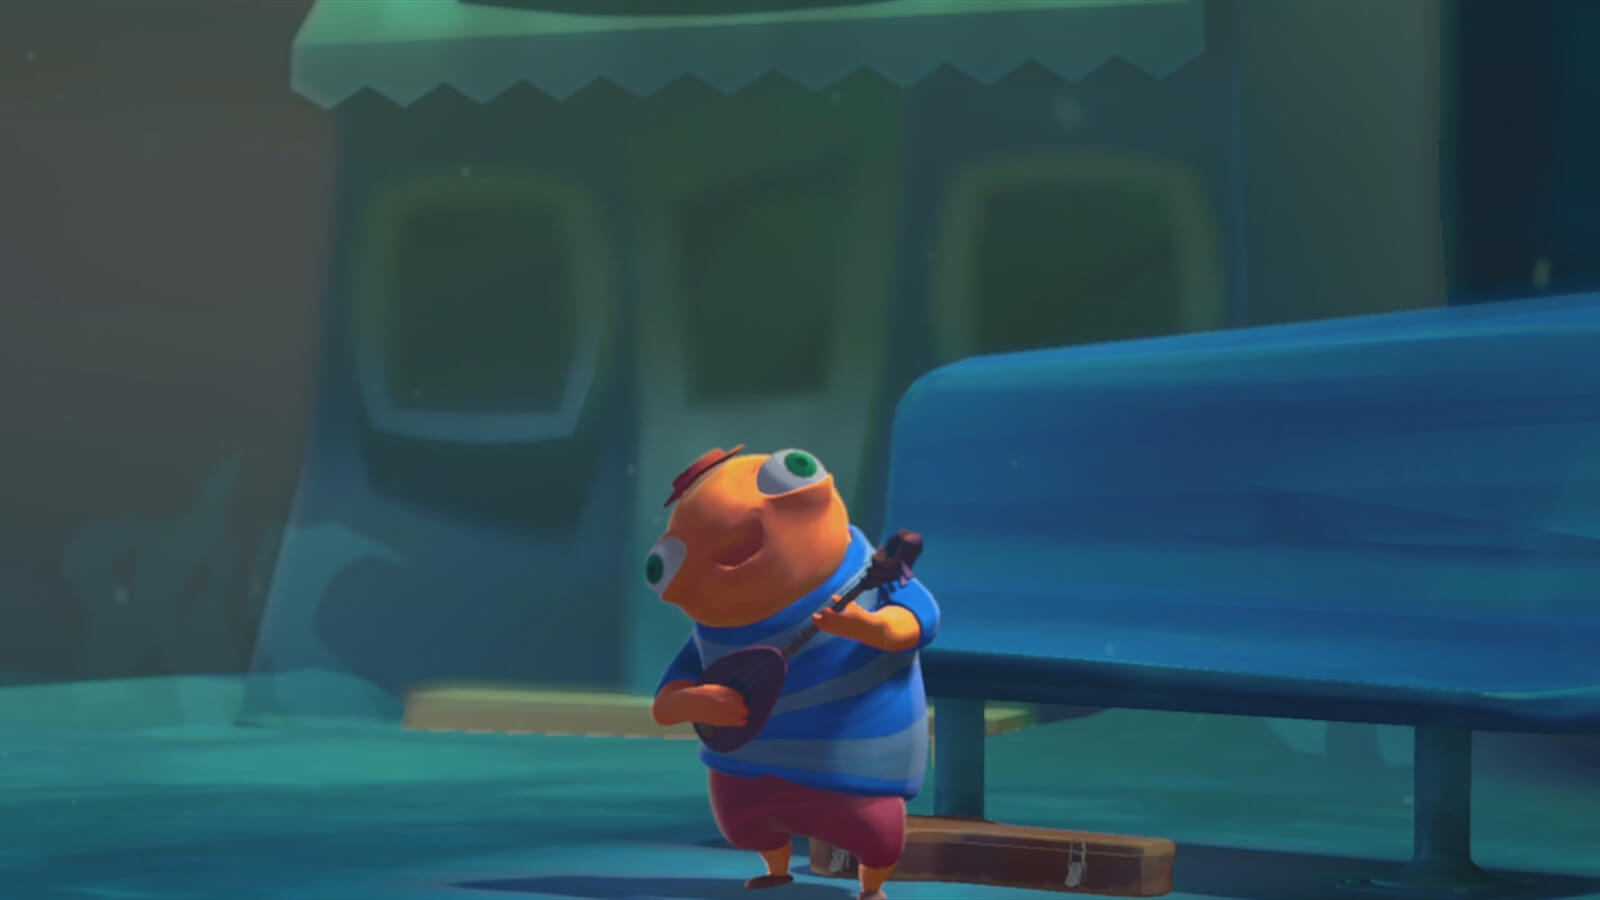 An orange fish in a red cap and striped blue t-shirt and holding happily plays a guitar-like instrument at a bus stop